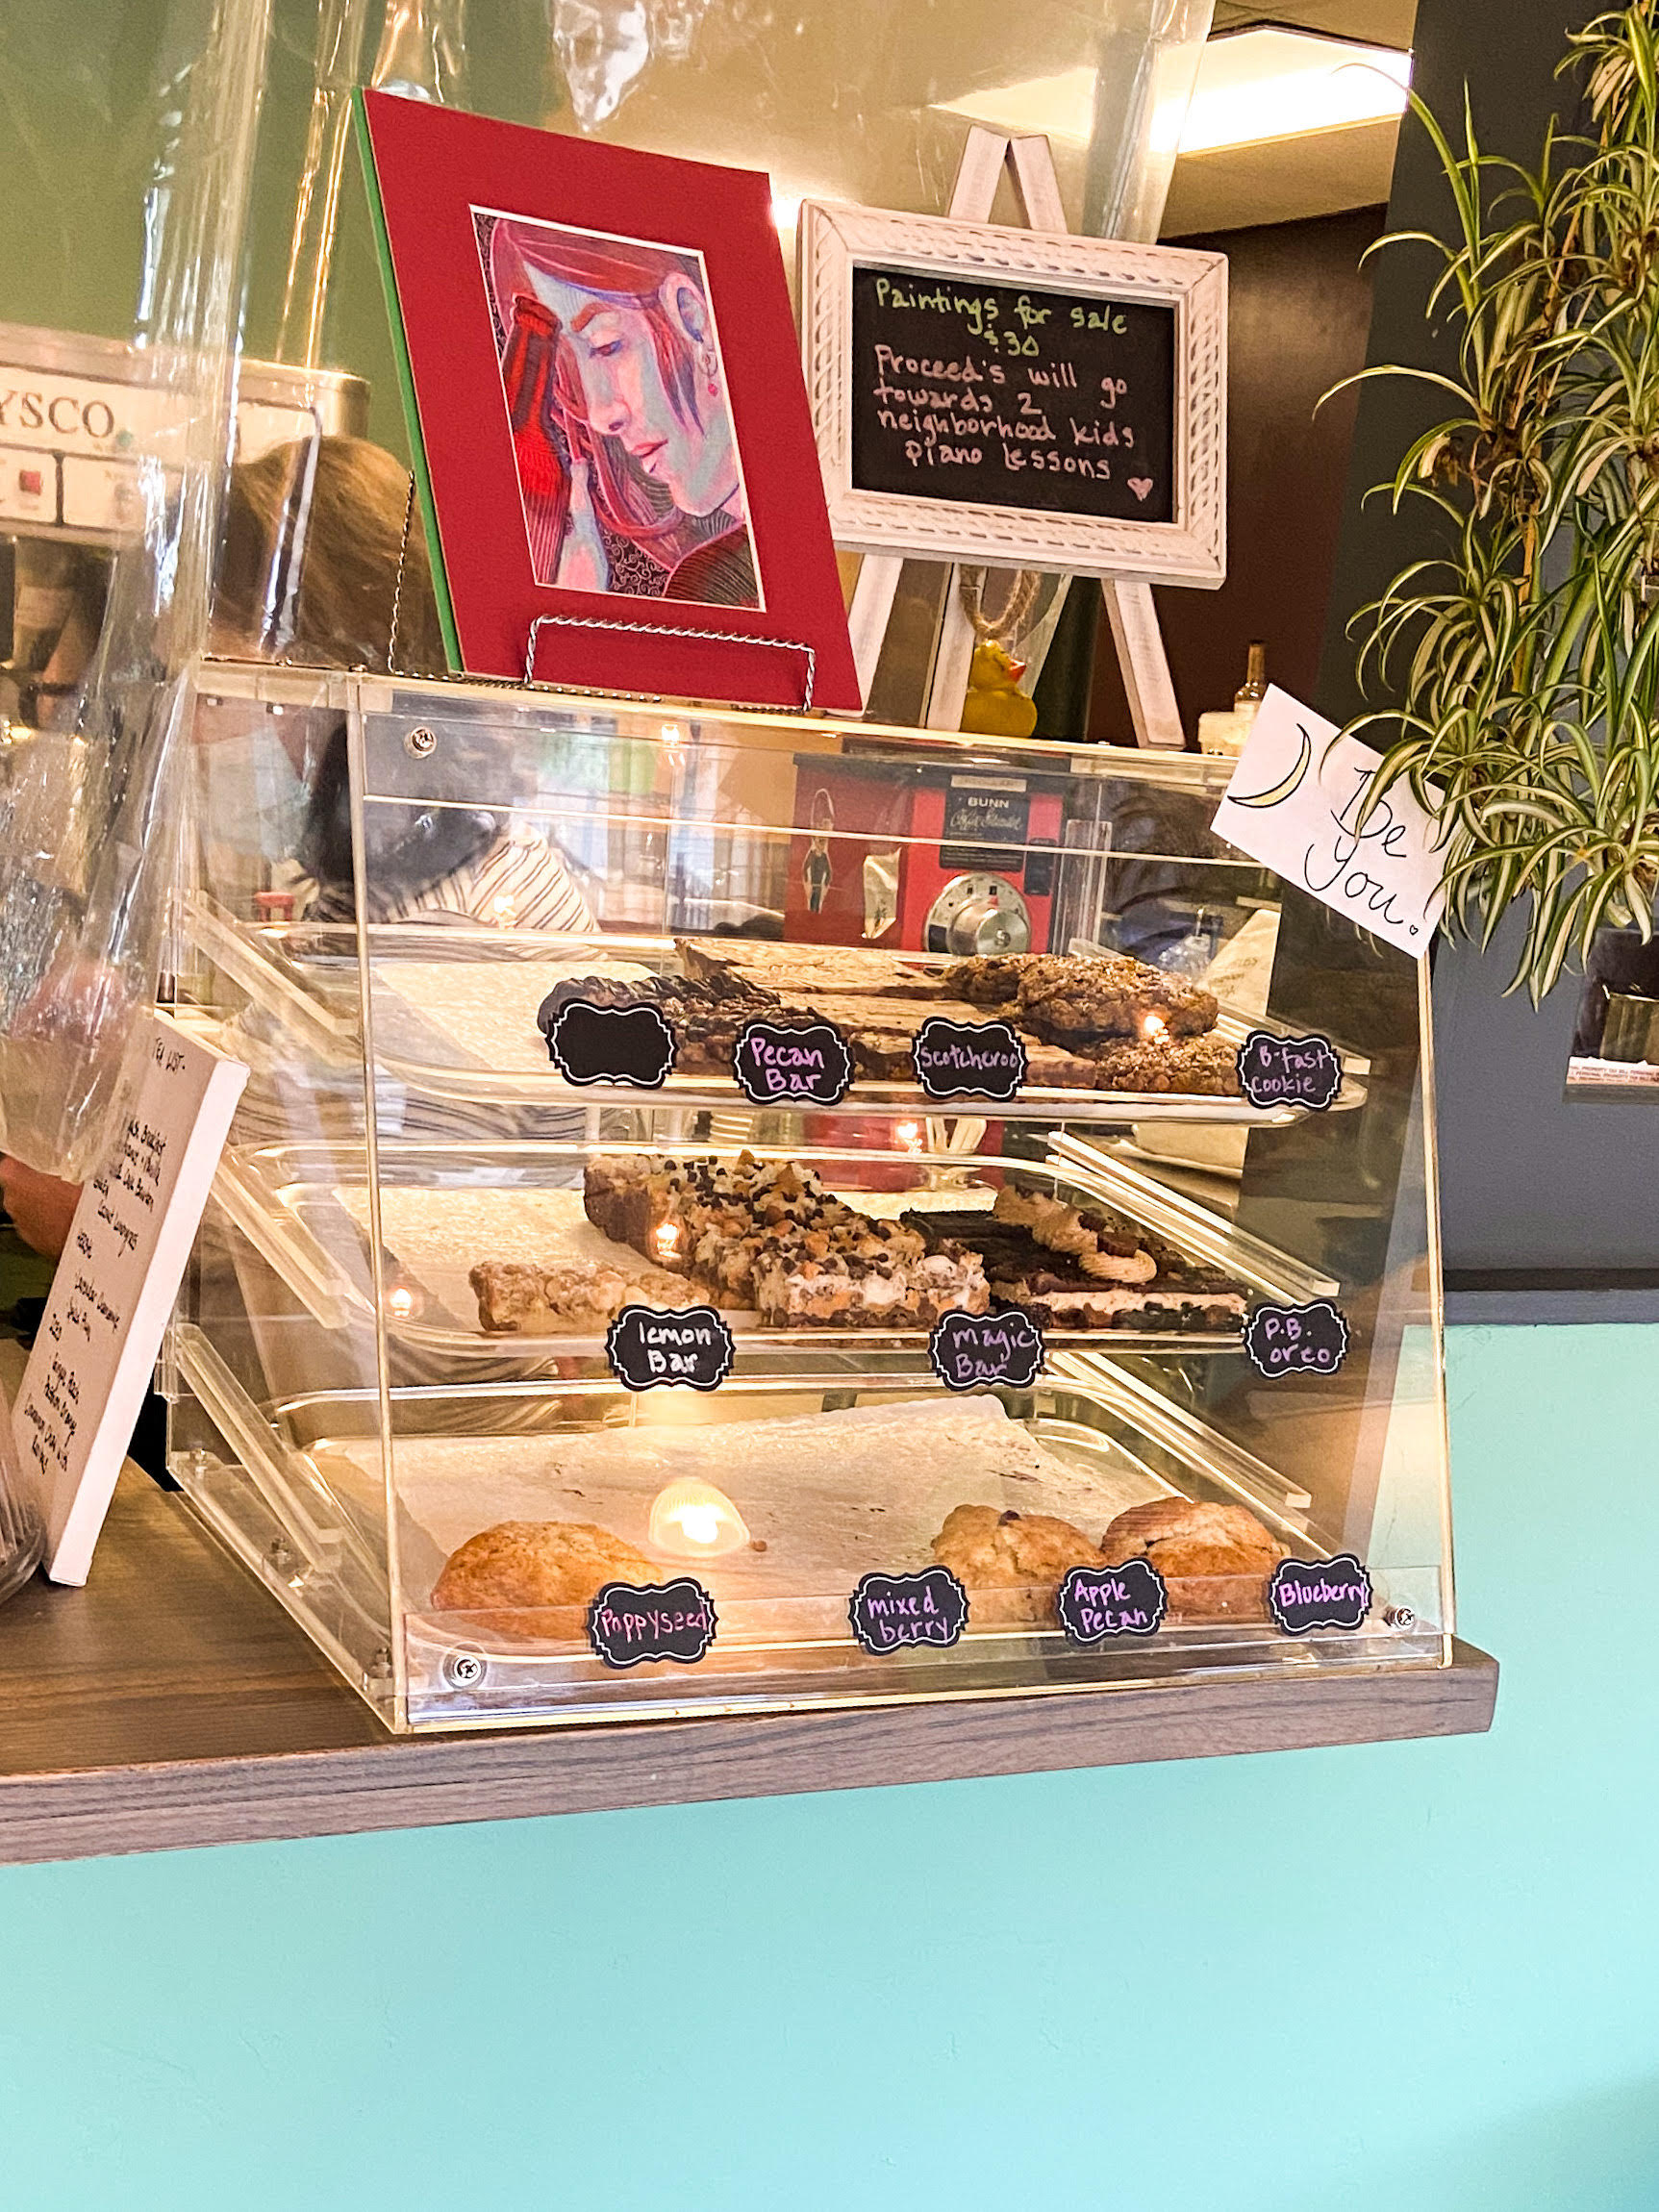 Moon Water Cafe, Bakery, Cookie, McFleshmans, Breadsmith, Riverview Gardens, Jacob's Meat Market